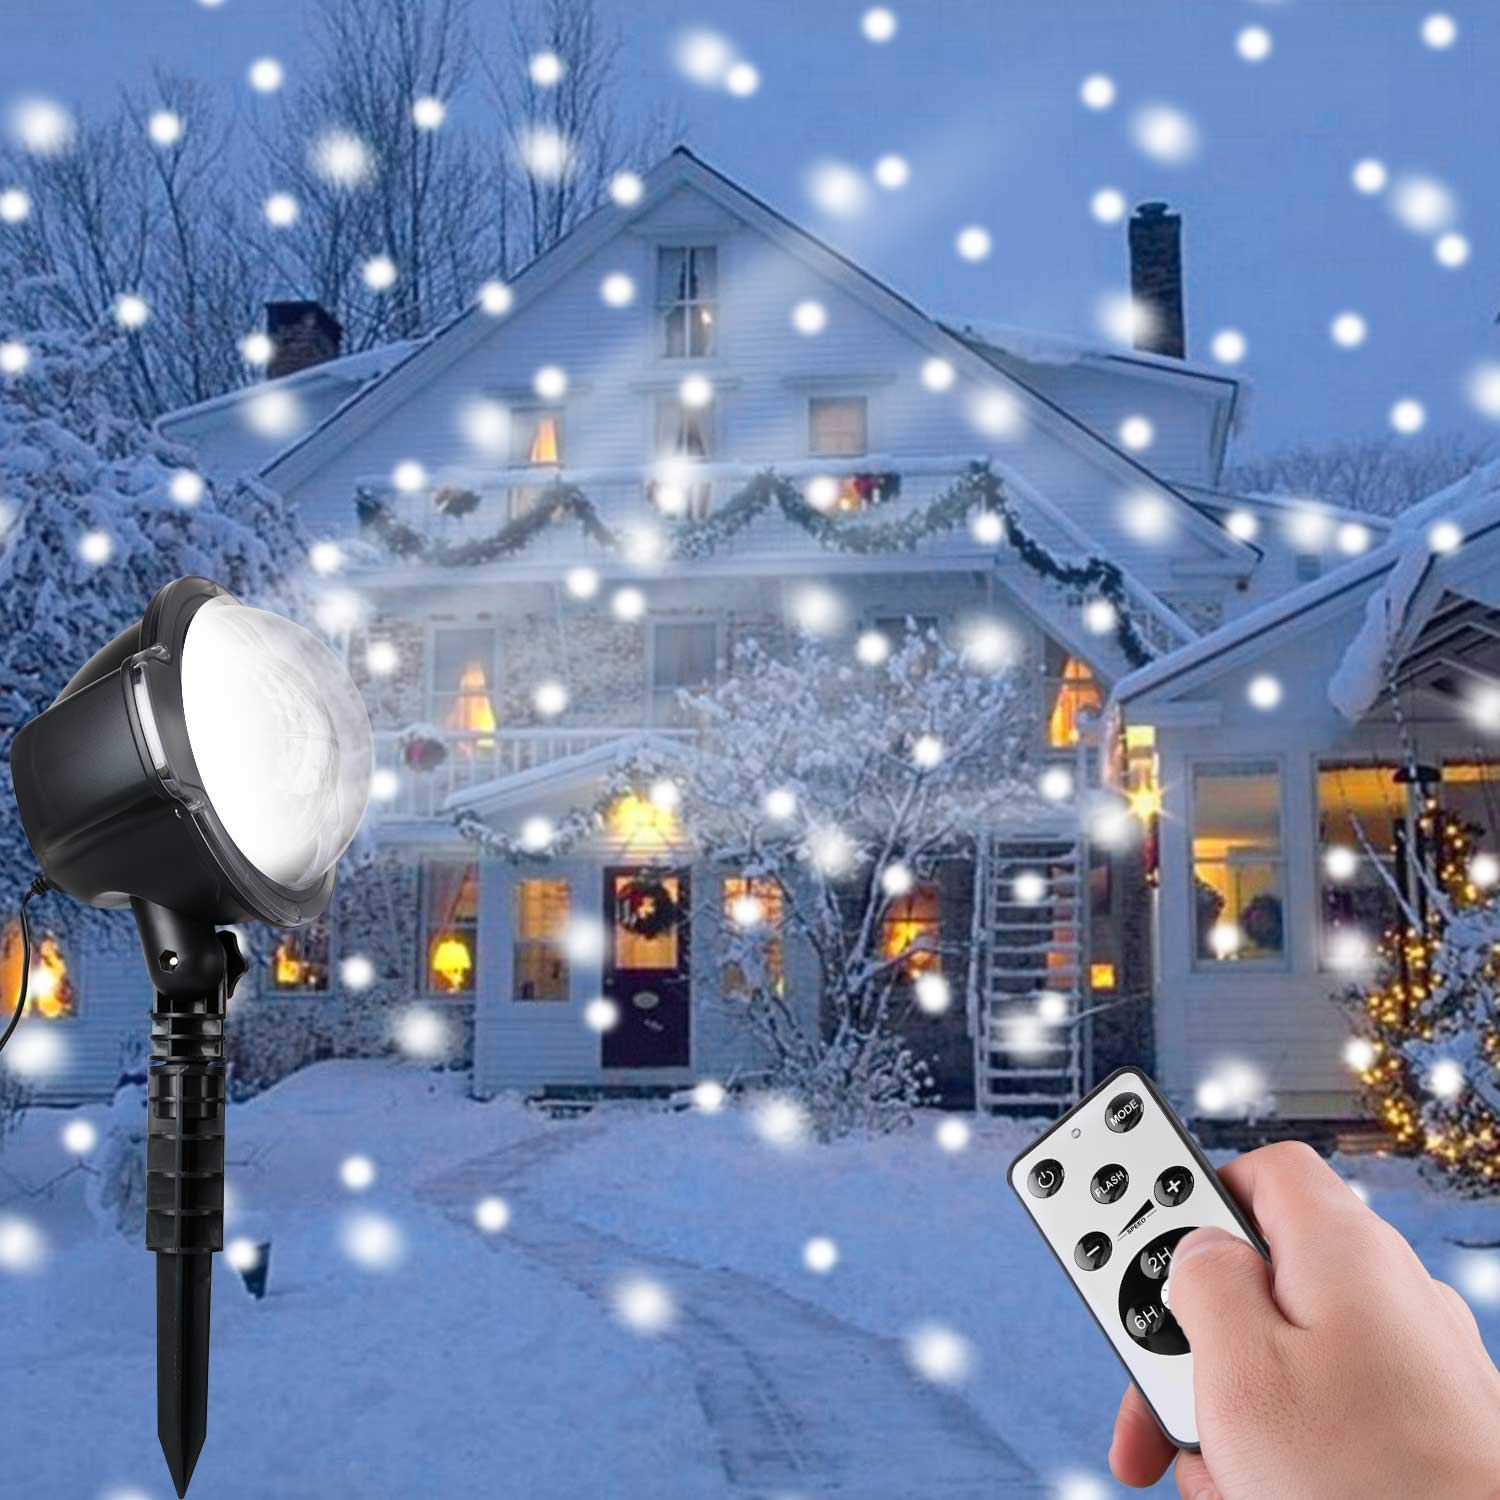 Minetom Christmas Snowfall Projector Lights Rotating LED Snow Projection with Remote Control Outdoor Landscape Decorative Lighting for Christmas Holiday Party Wedding Garden Patio